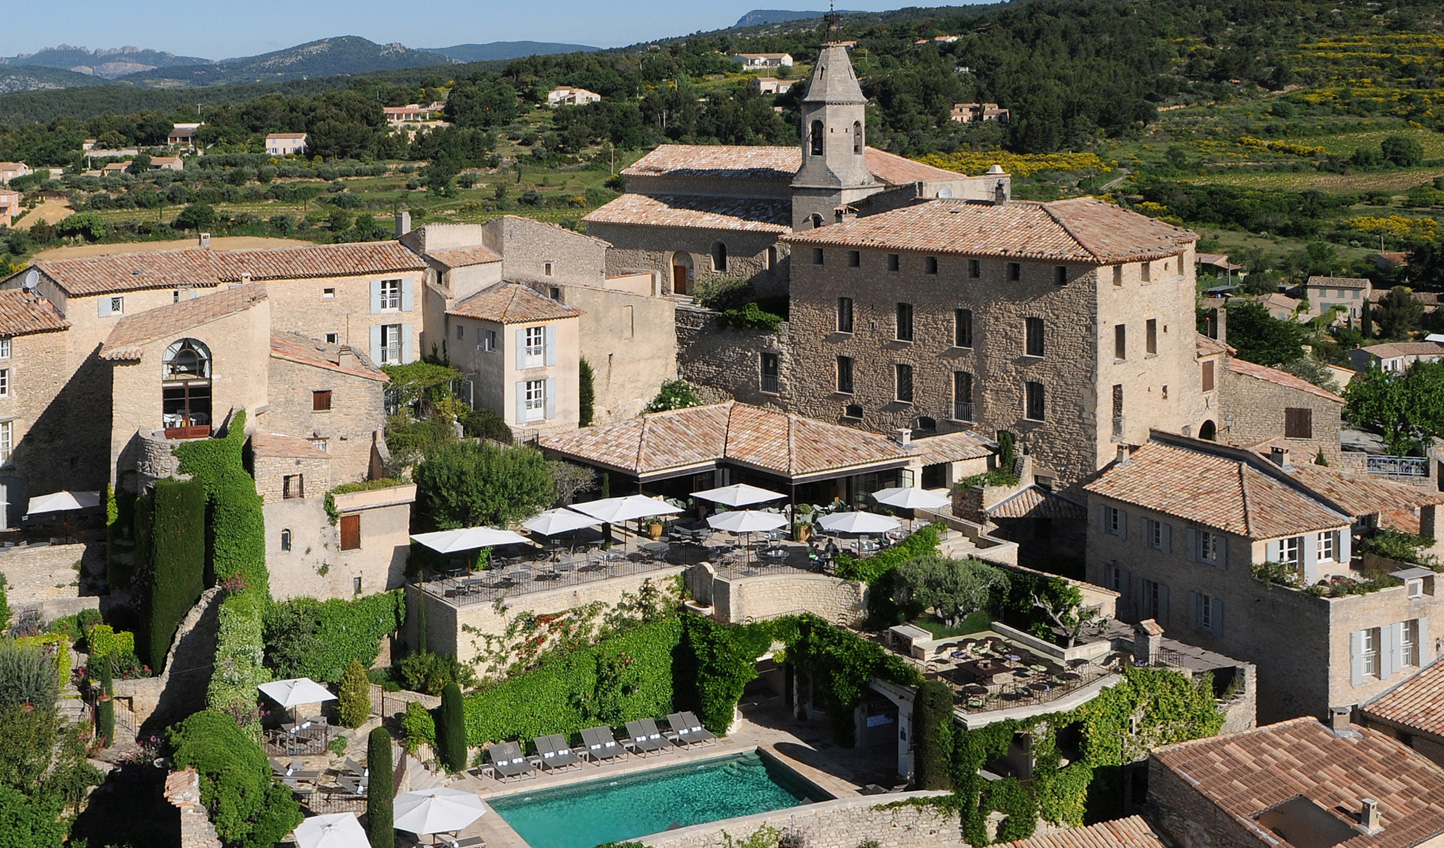 Rest your head at the hilltop Crillon Le Brave when you move on to Provence